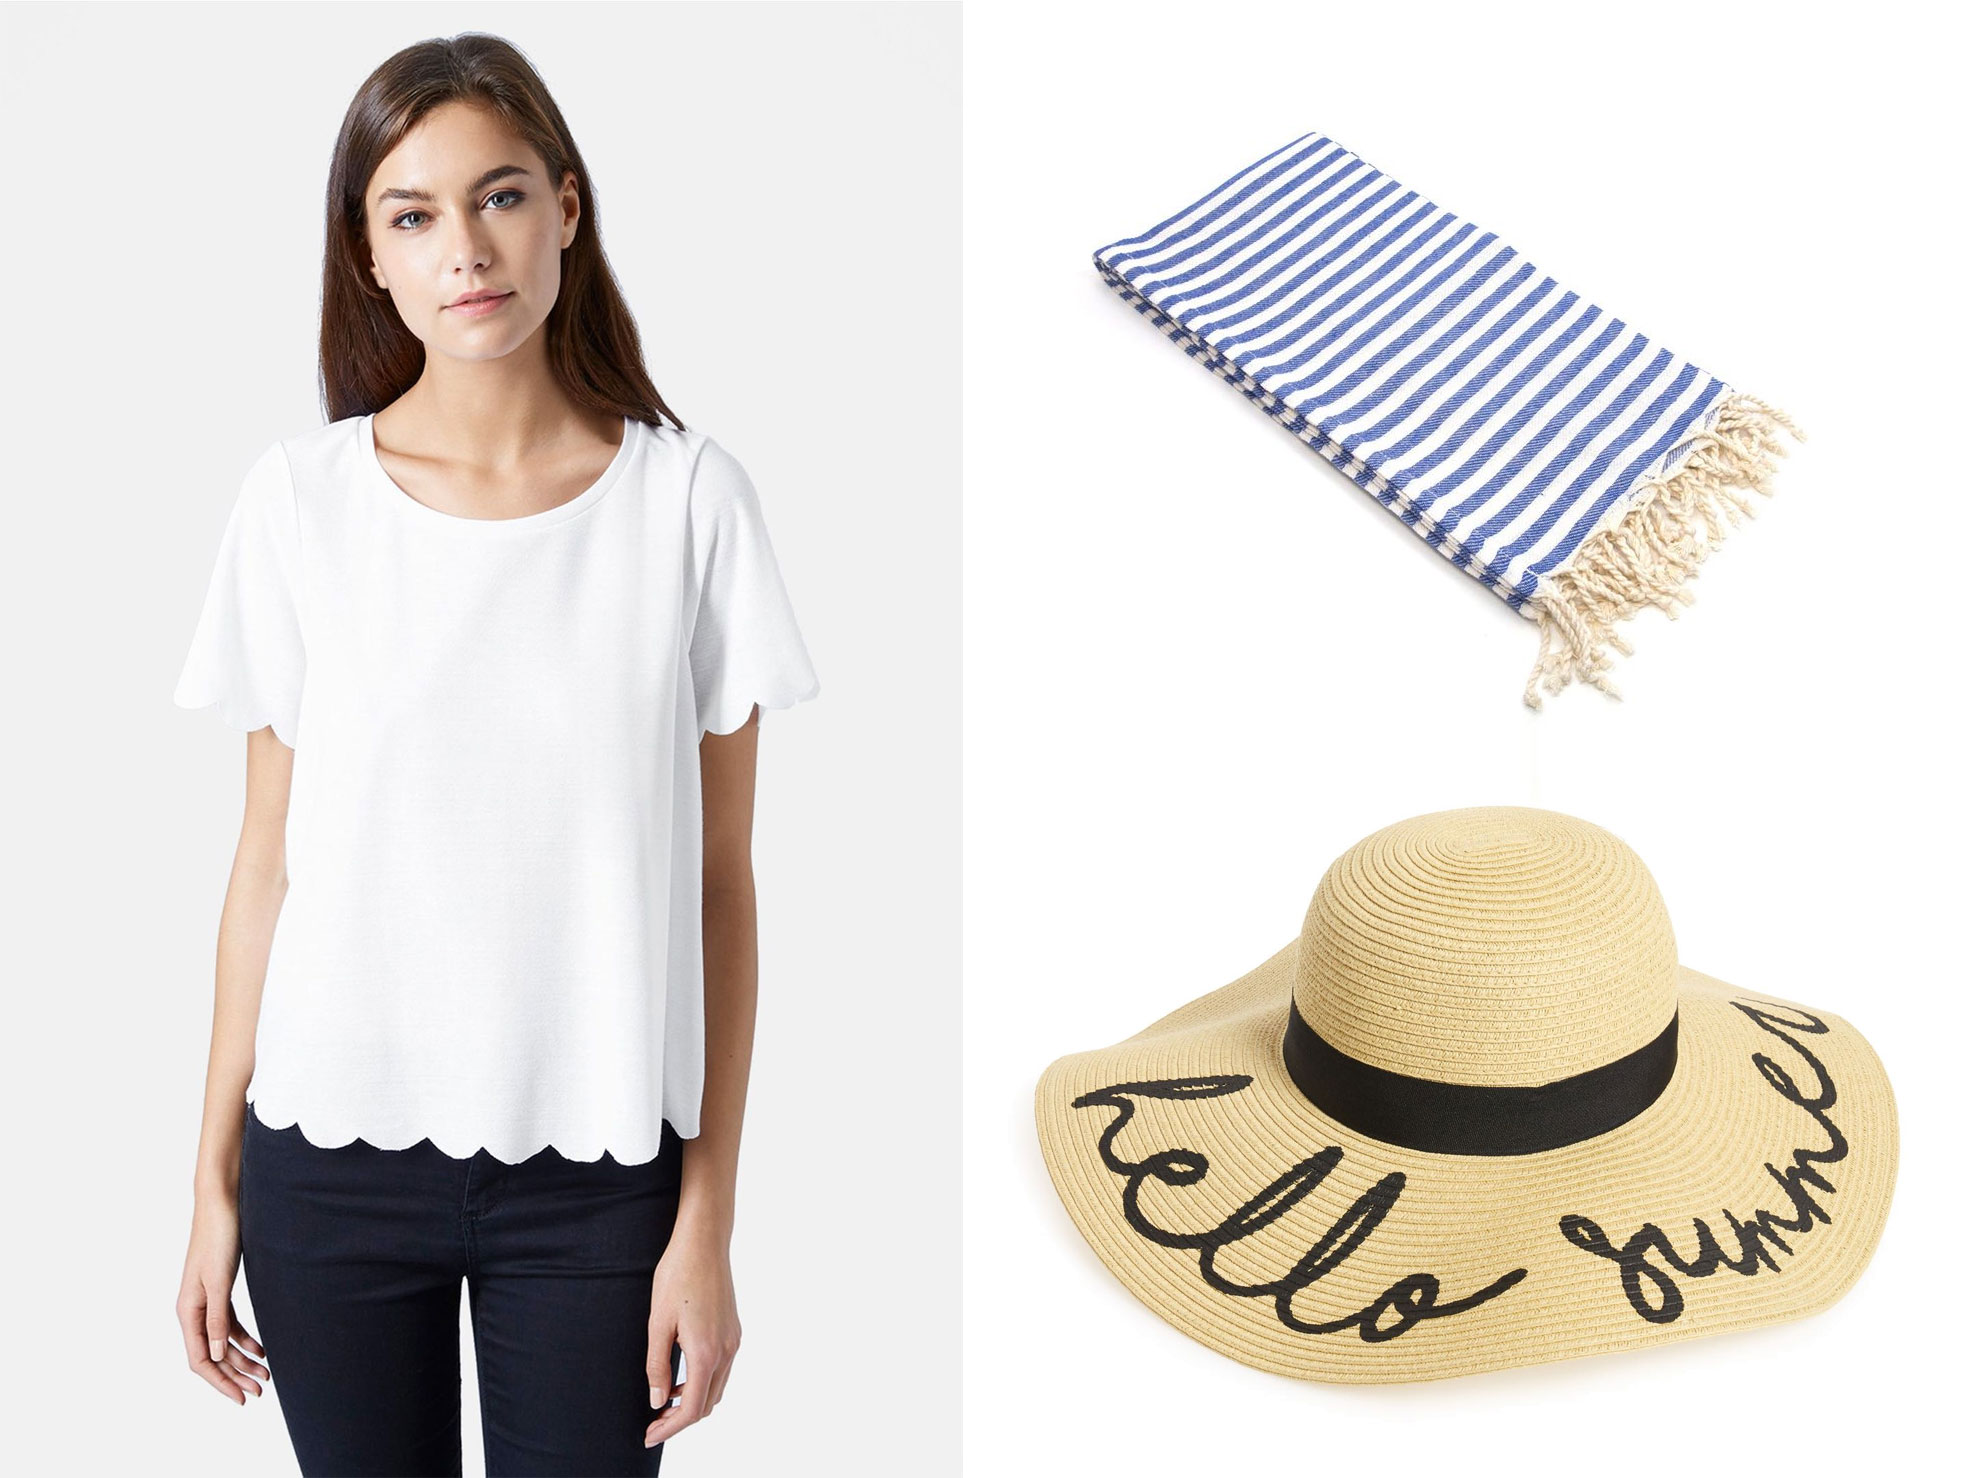 Scallop tee, beach towel and hello summer straw hat